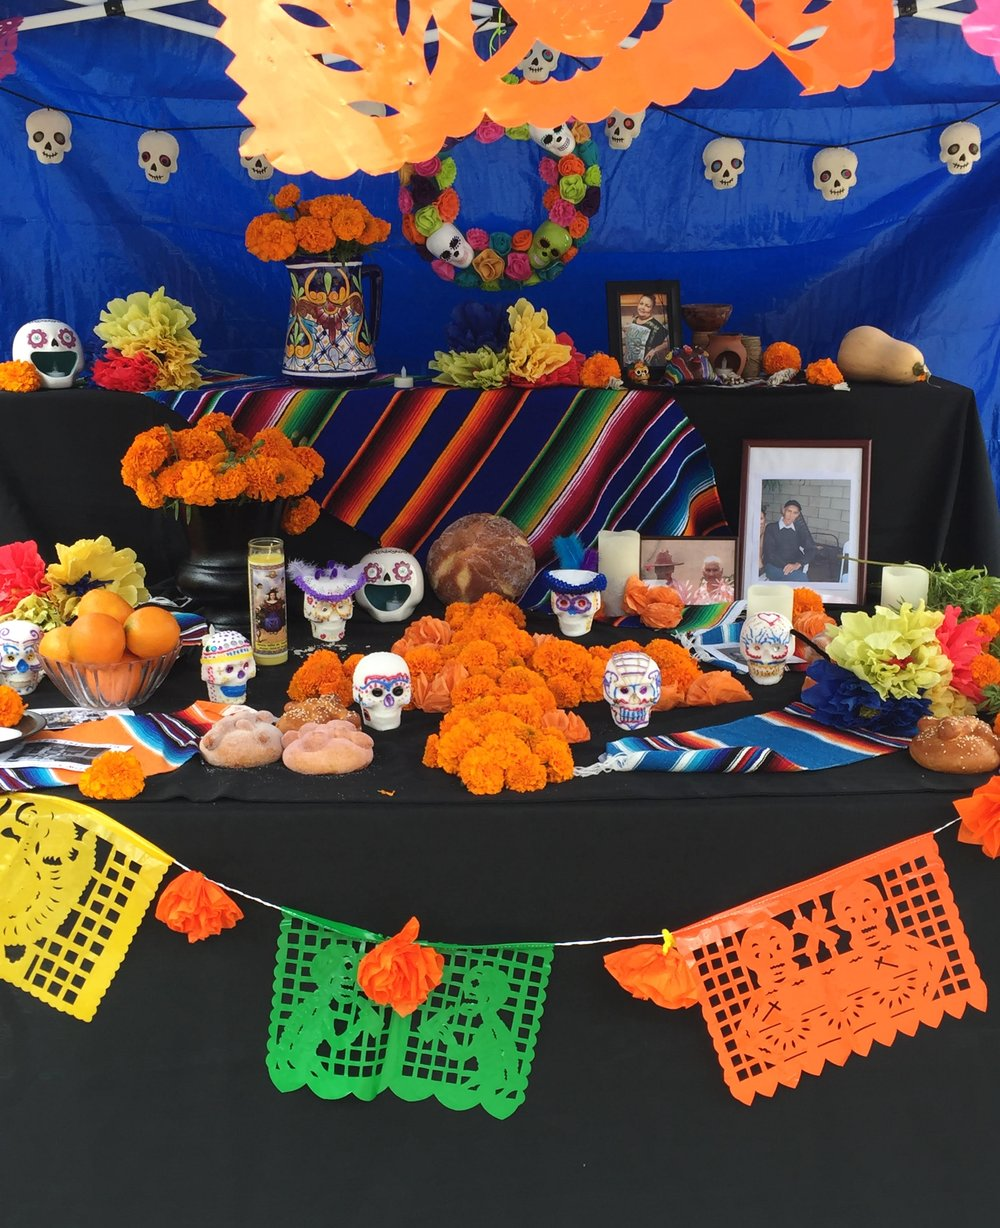 The shrine is a form of ancestor worship erected to pay homage to the dead. Dia de los Muertos (Day of the Dead) occurs every year, on November 2. Photograph by Christopher Salazar.